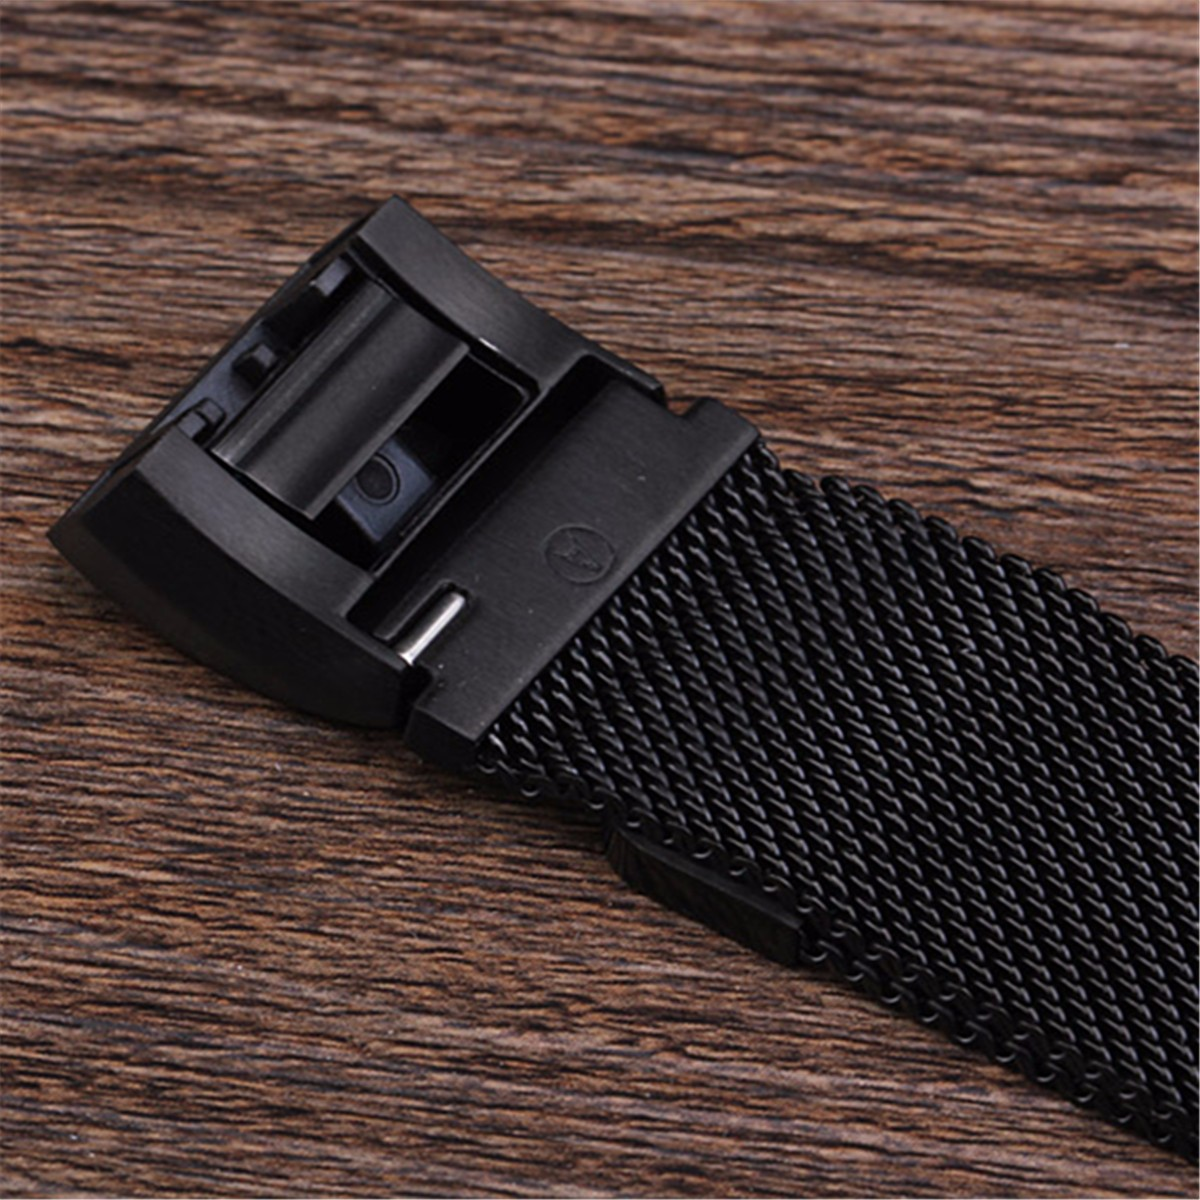 Replacement Magnetic Metal Wristband Strap For Fitbit Charge 2 Heart Rate Tracker Monitor